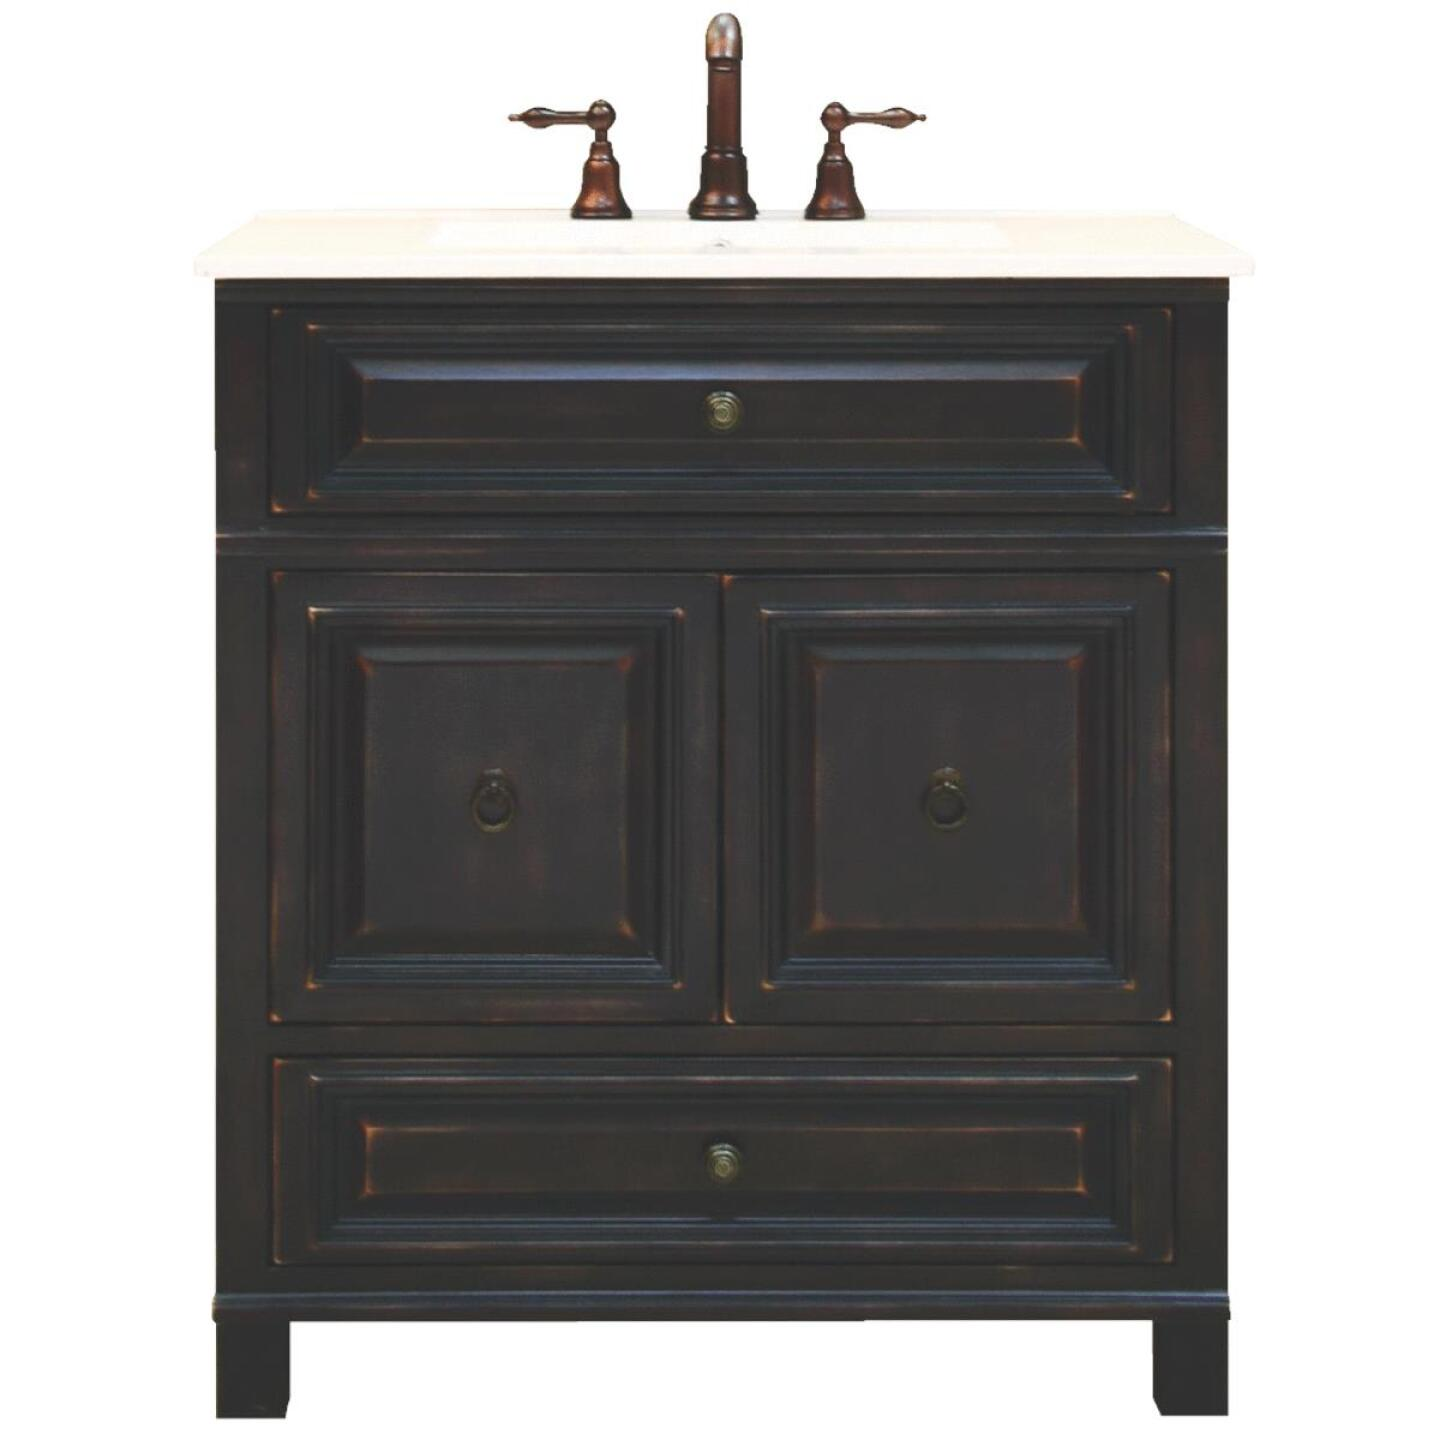 Sunny Wood Barton Hill Black Onyx 30 In. W x 34 In. H x 21 In. D Vanity Base, 2 Door/1 Drawer Image 116